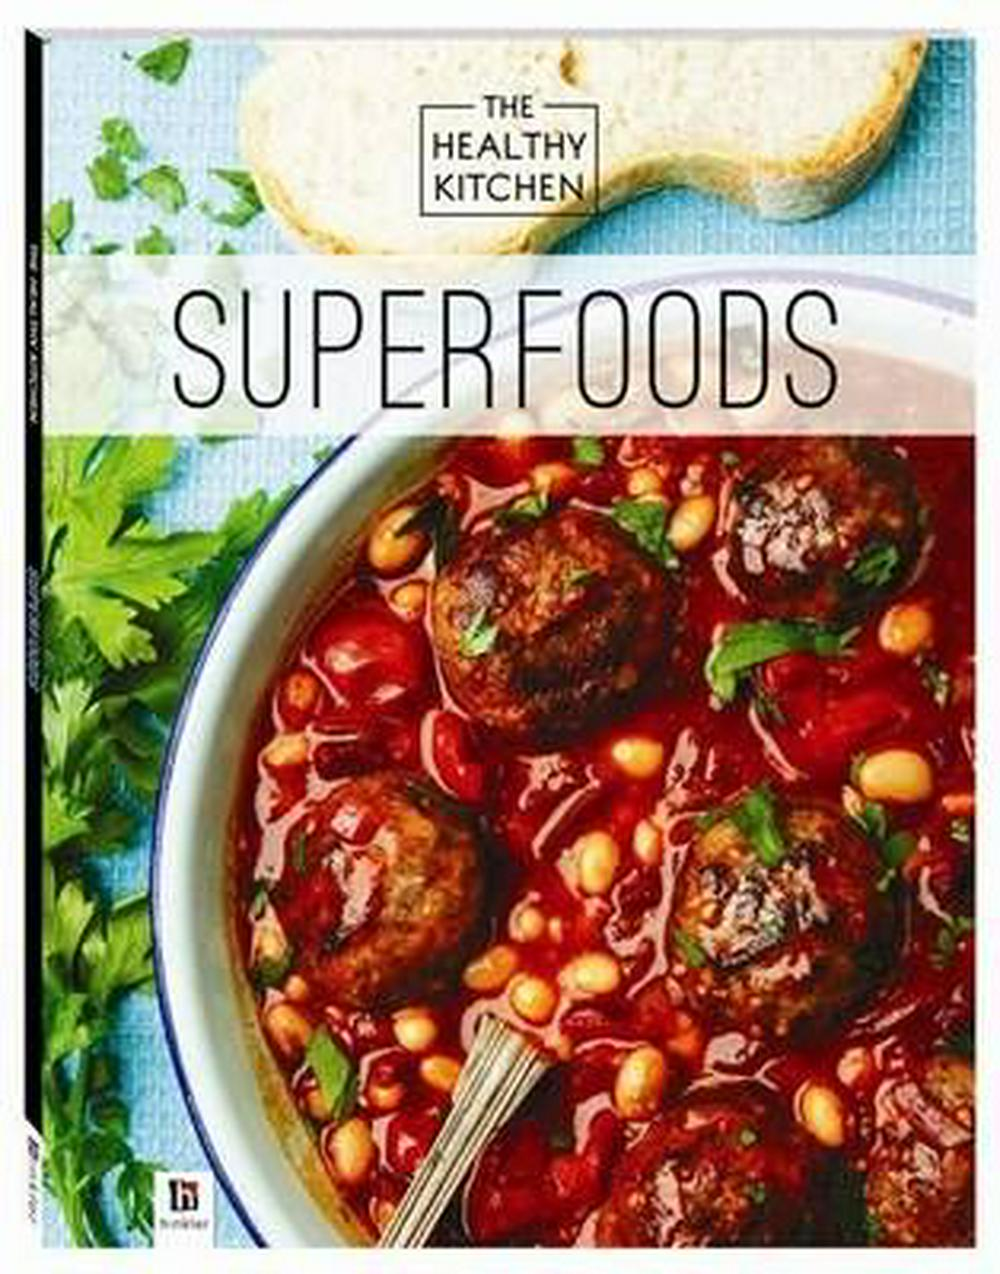 Healthy Kitchen - SuperfoodsHealthy Kitchen